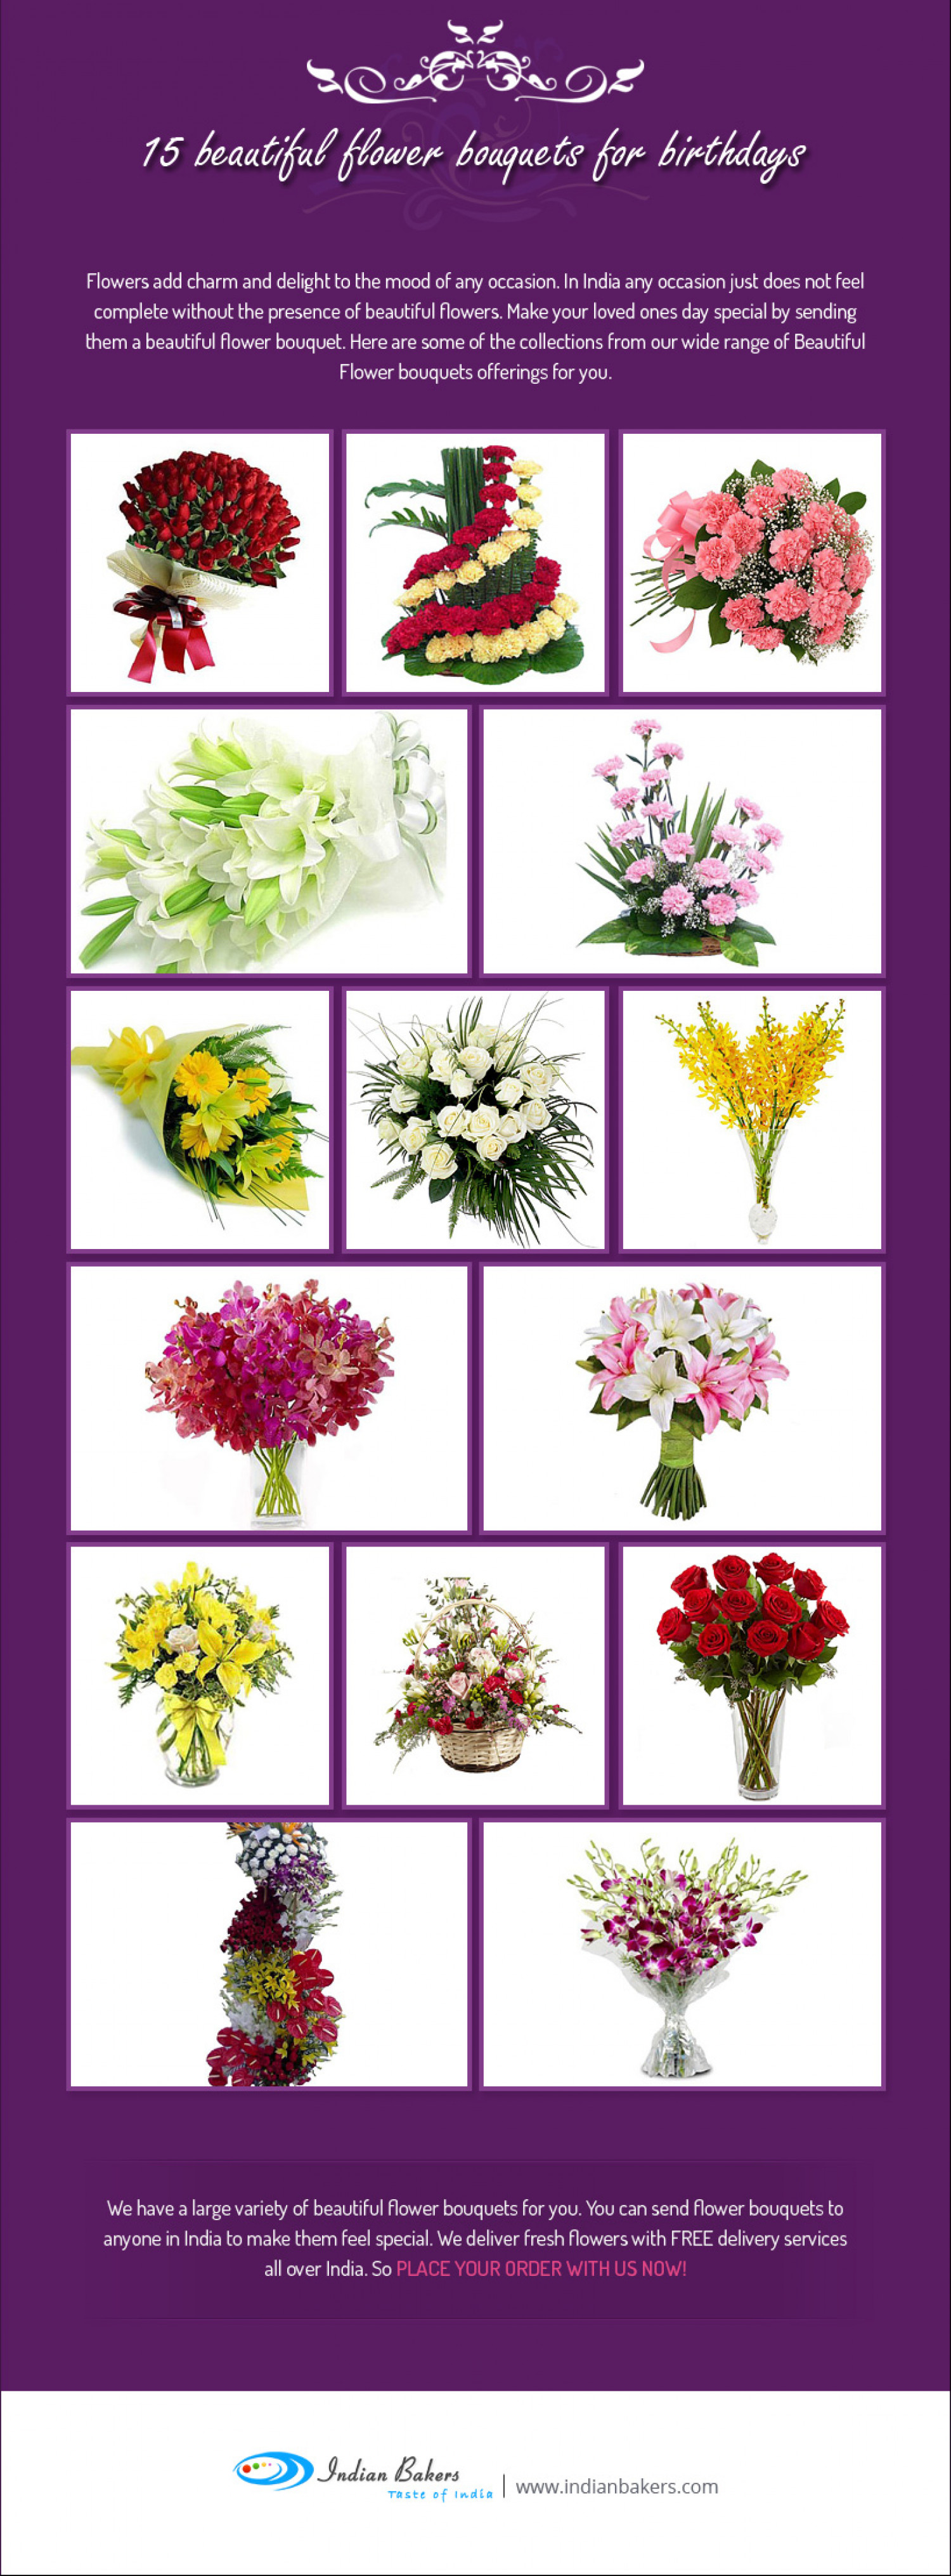 15 beautiful flower bouquets for birthday visual 15 beautiful flower bouquets for birthday infographic izmirmasajfo